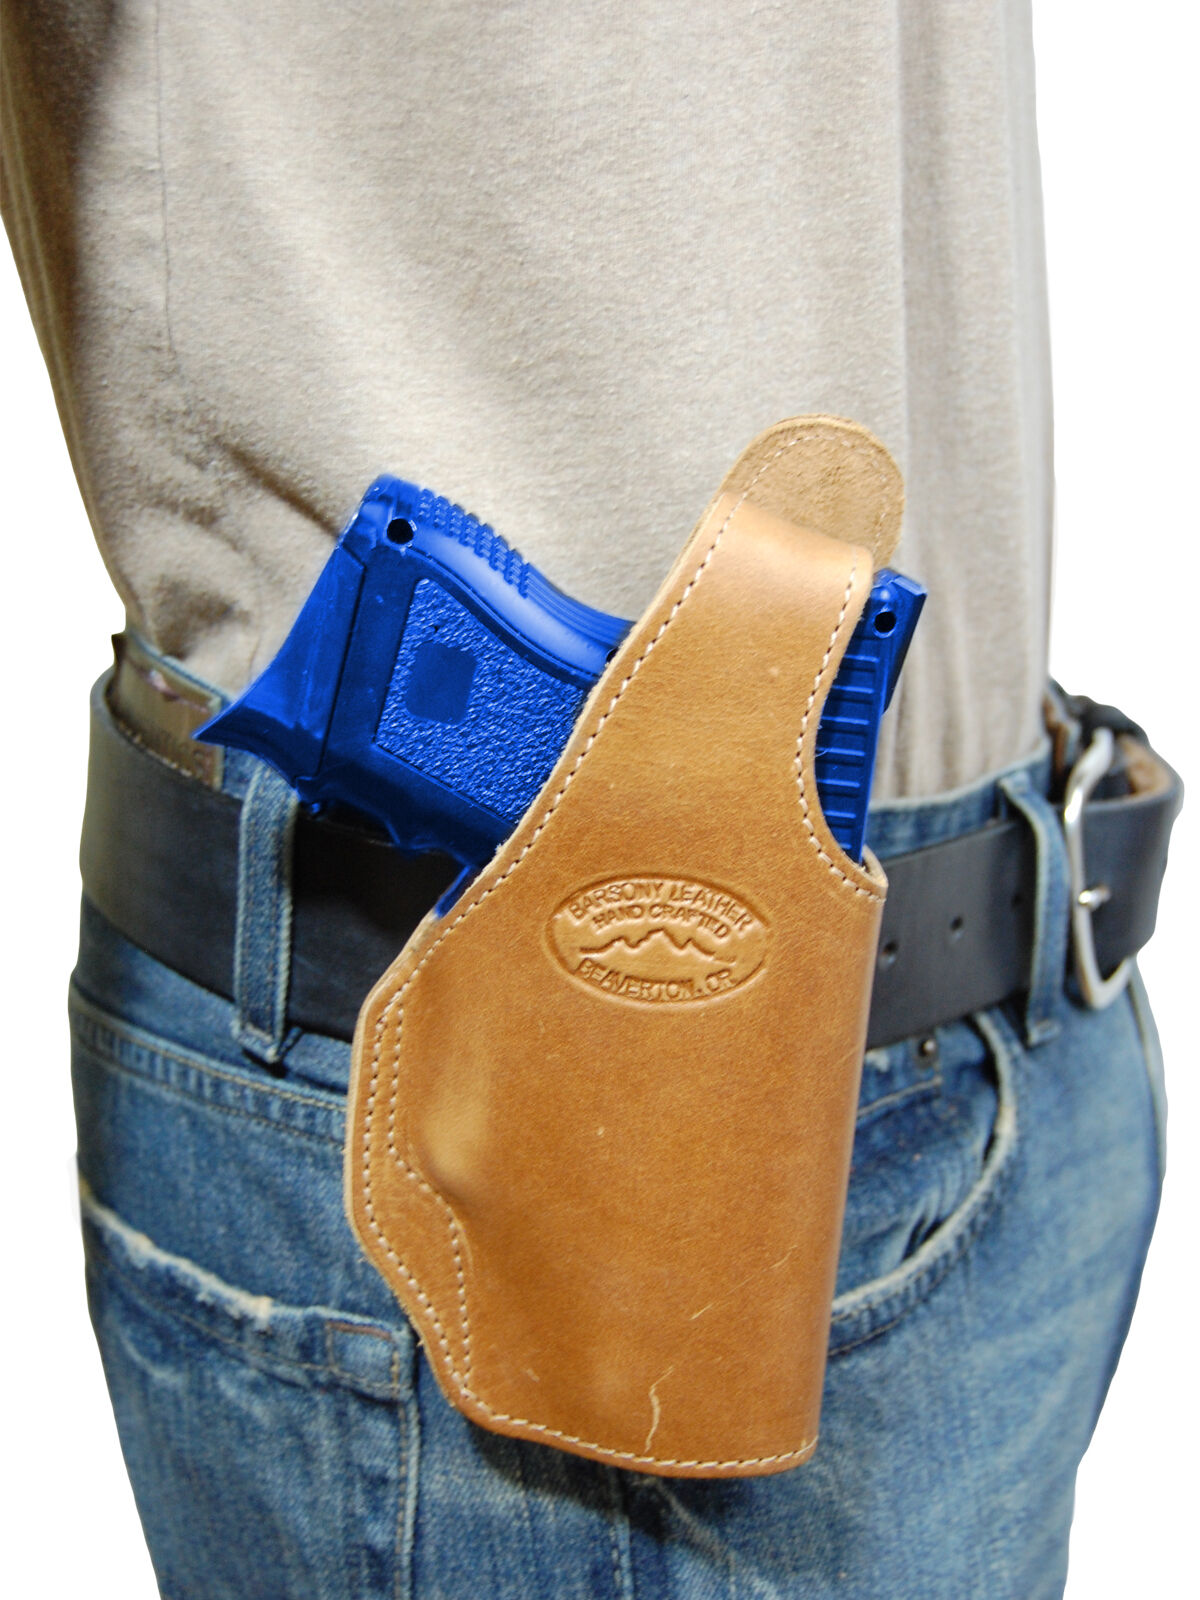 New Barsony Tan Leder OWB Holster for Smith&Wesson Compact, Sub-Comp 9mm 40 45